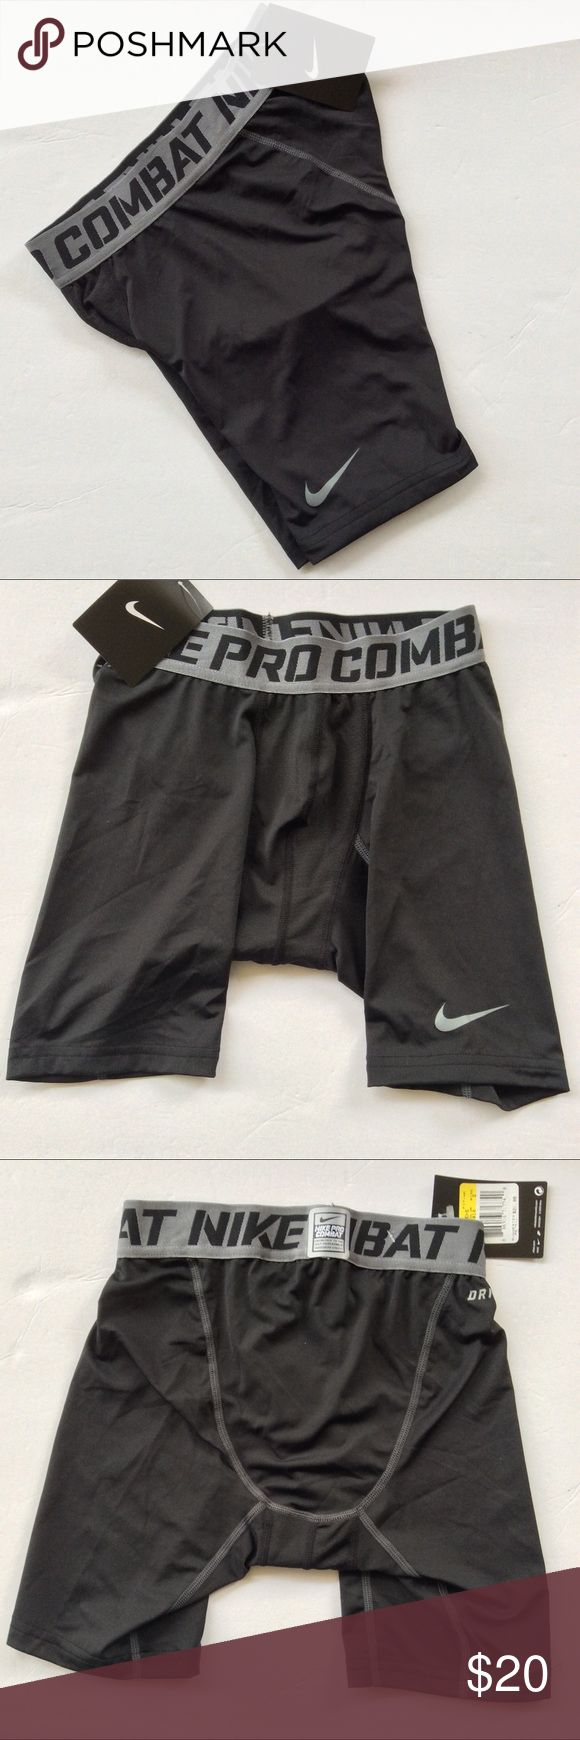 ‼️‼️NWT NIKE PRO COMBAT MENS SHORTS SZ SM‼️‼️ NWT Nike men's Nike Pro Combat compression shorts.  White Nike swoosh on front thigh.  Superior quality compression short.  Interior has mesh lining at crotch.  Nike Prol logo waistband. Nike Shorts Athletic